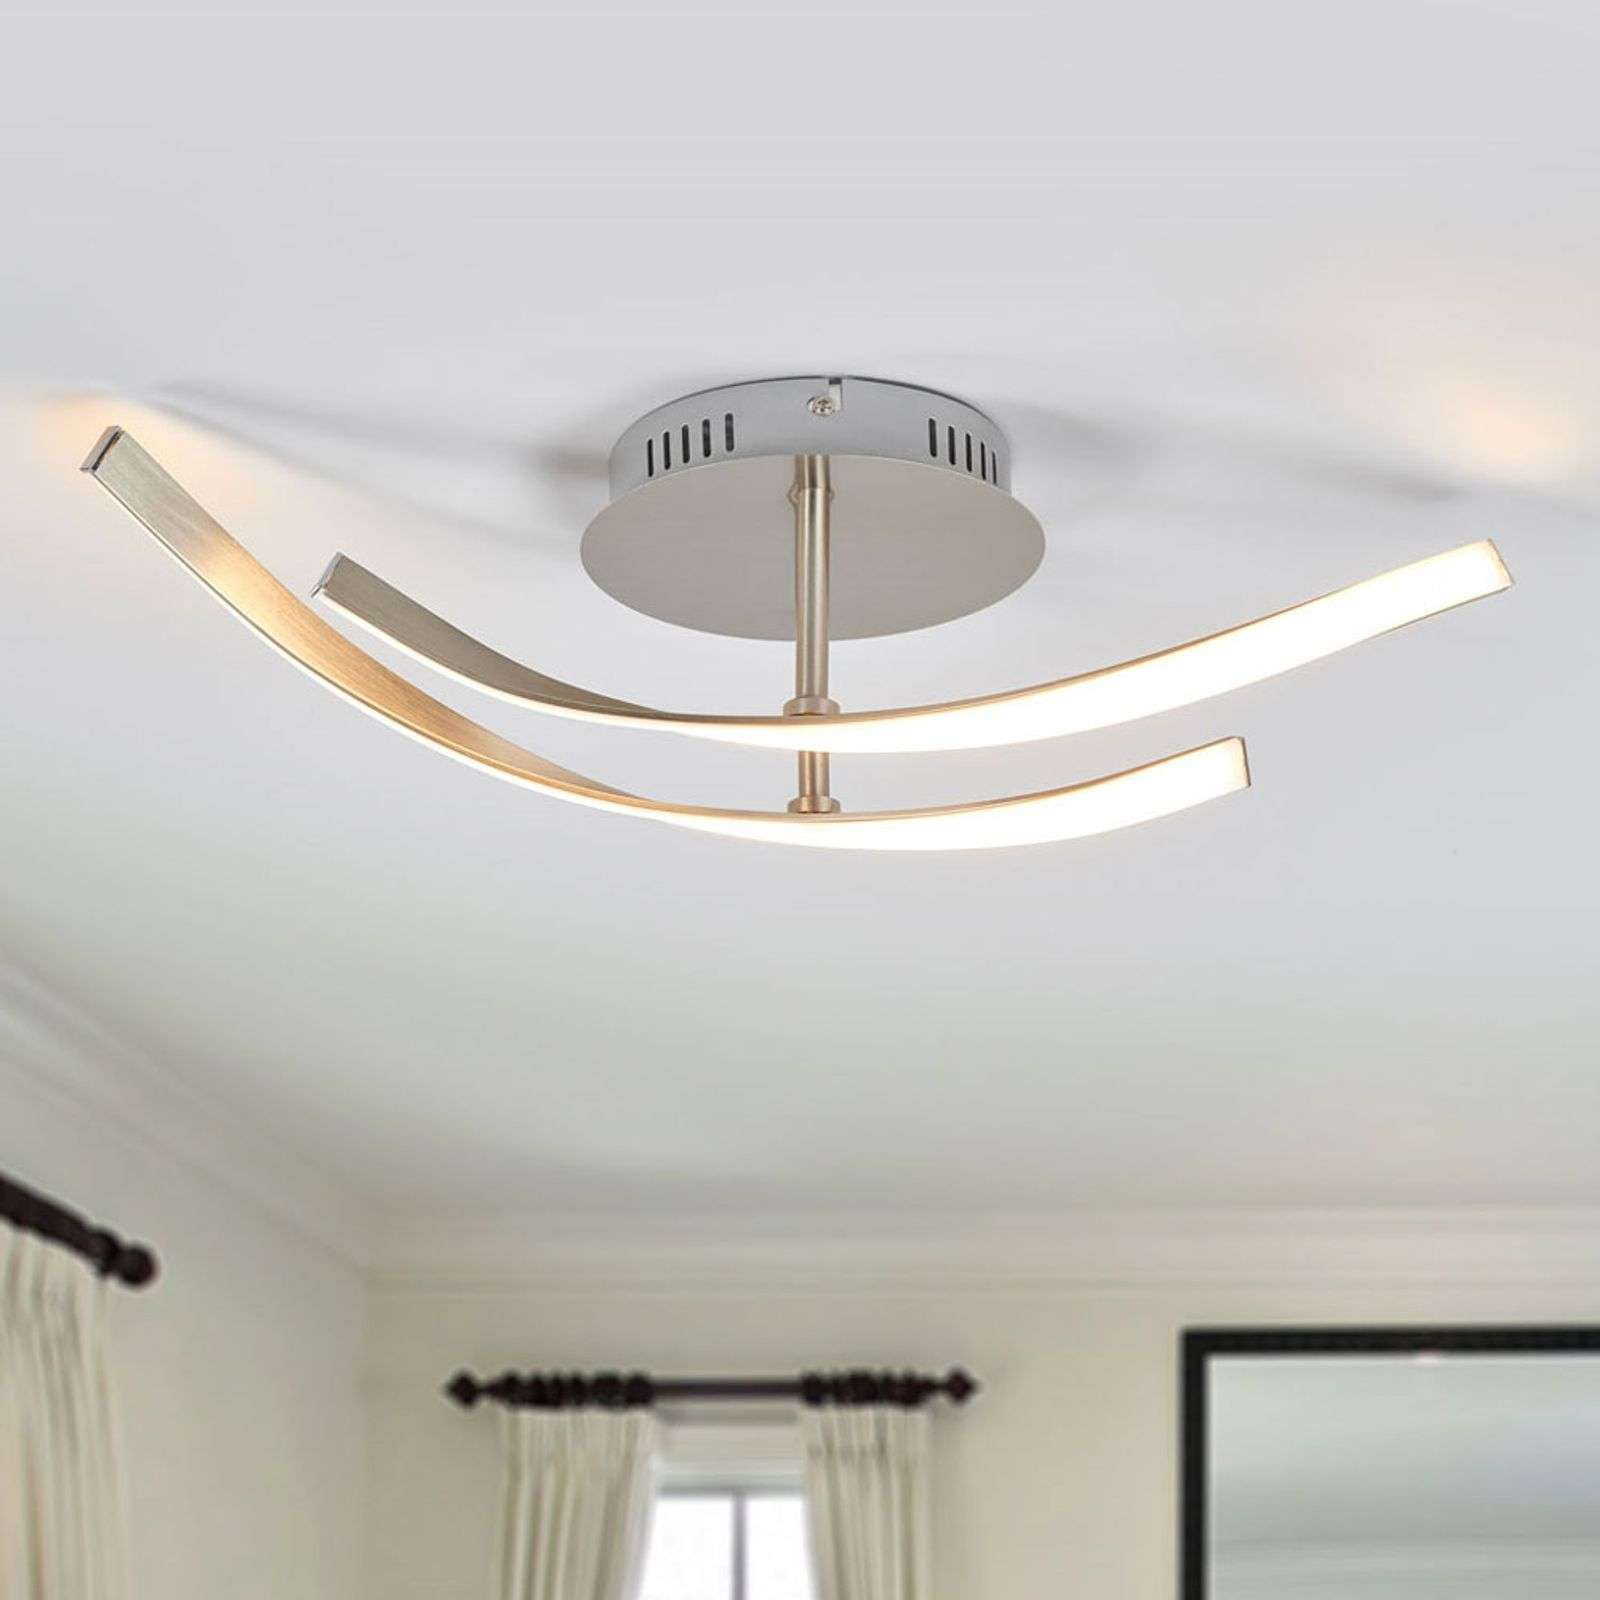 Plafonnier LED Milane moderne, aspect nickel